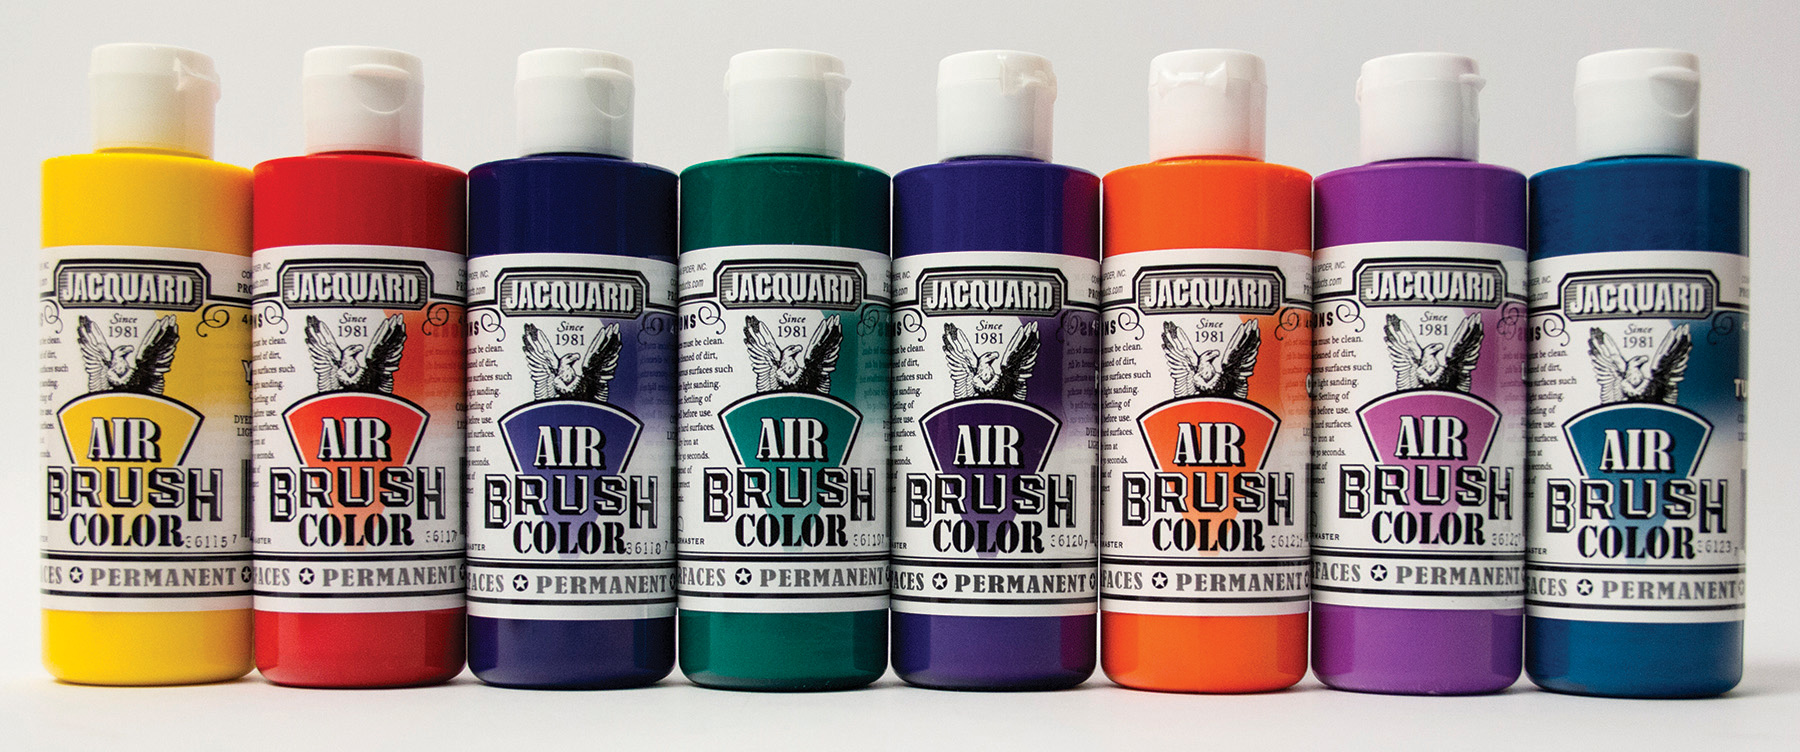 Jacquard Bright Airbrush Color